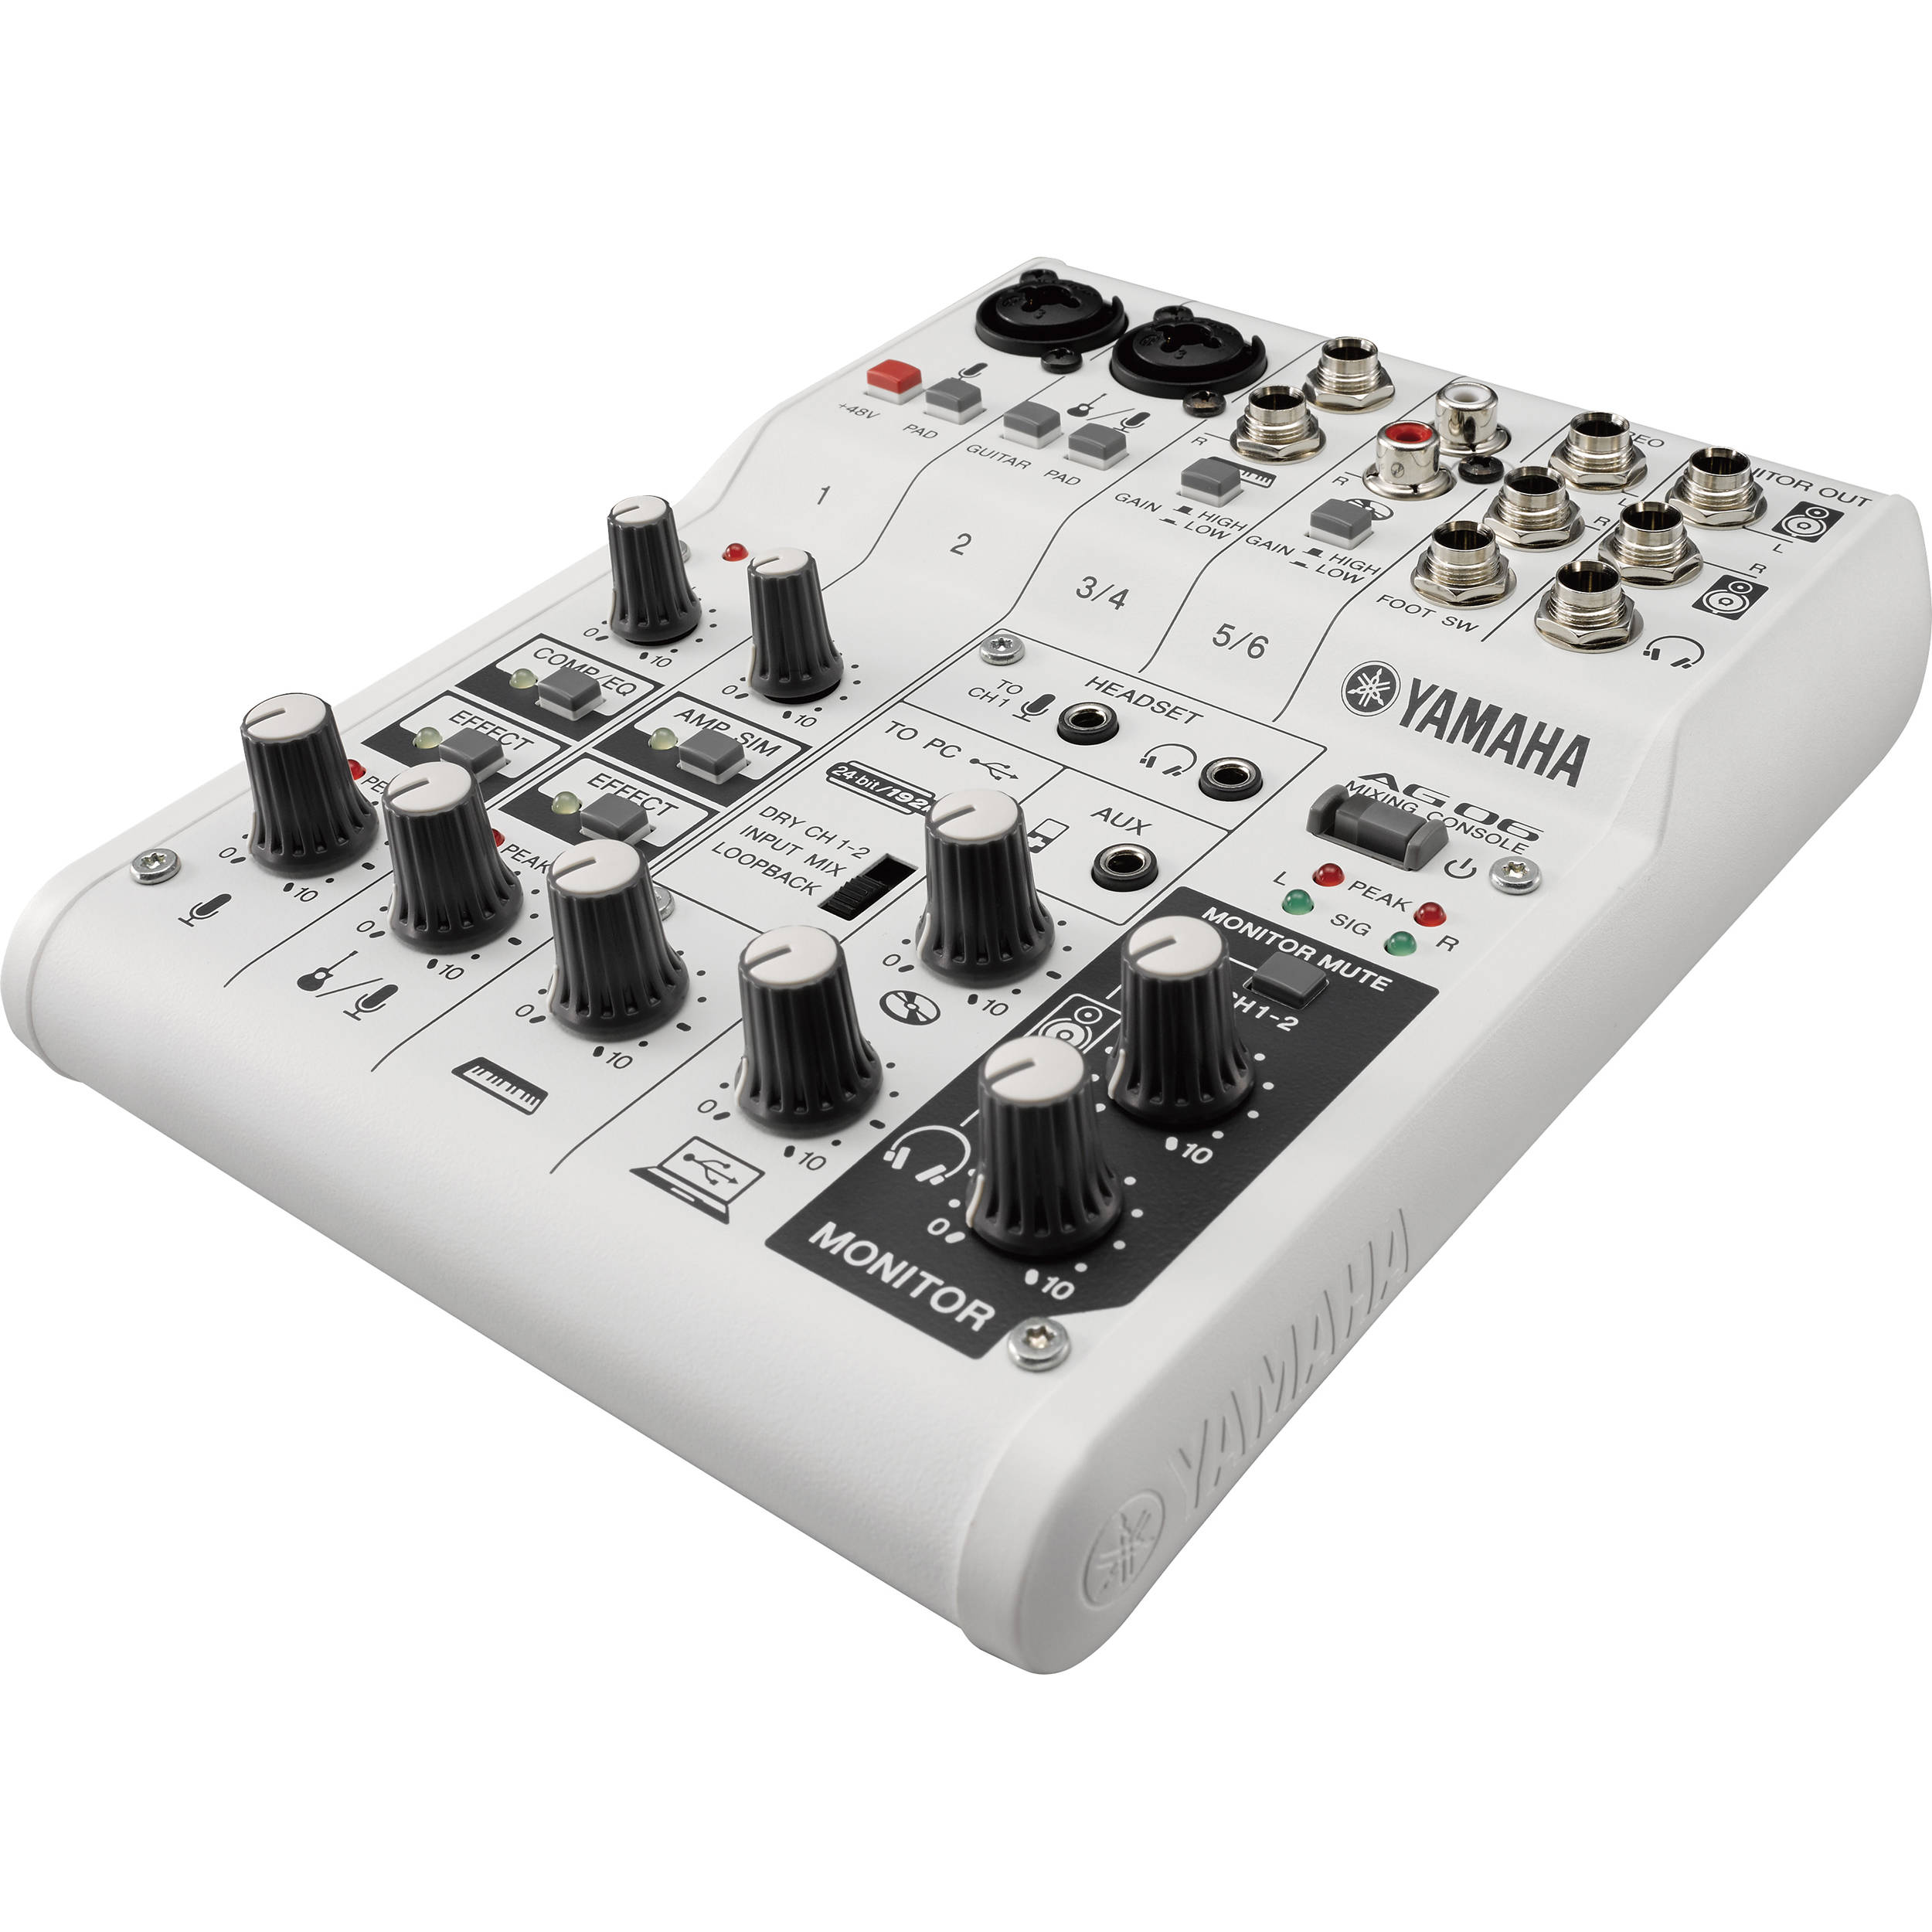 Yamaha Mixer With Audio Interface